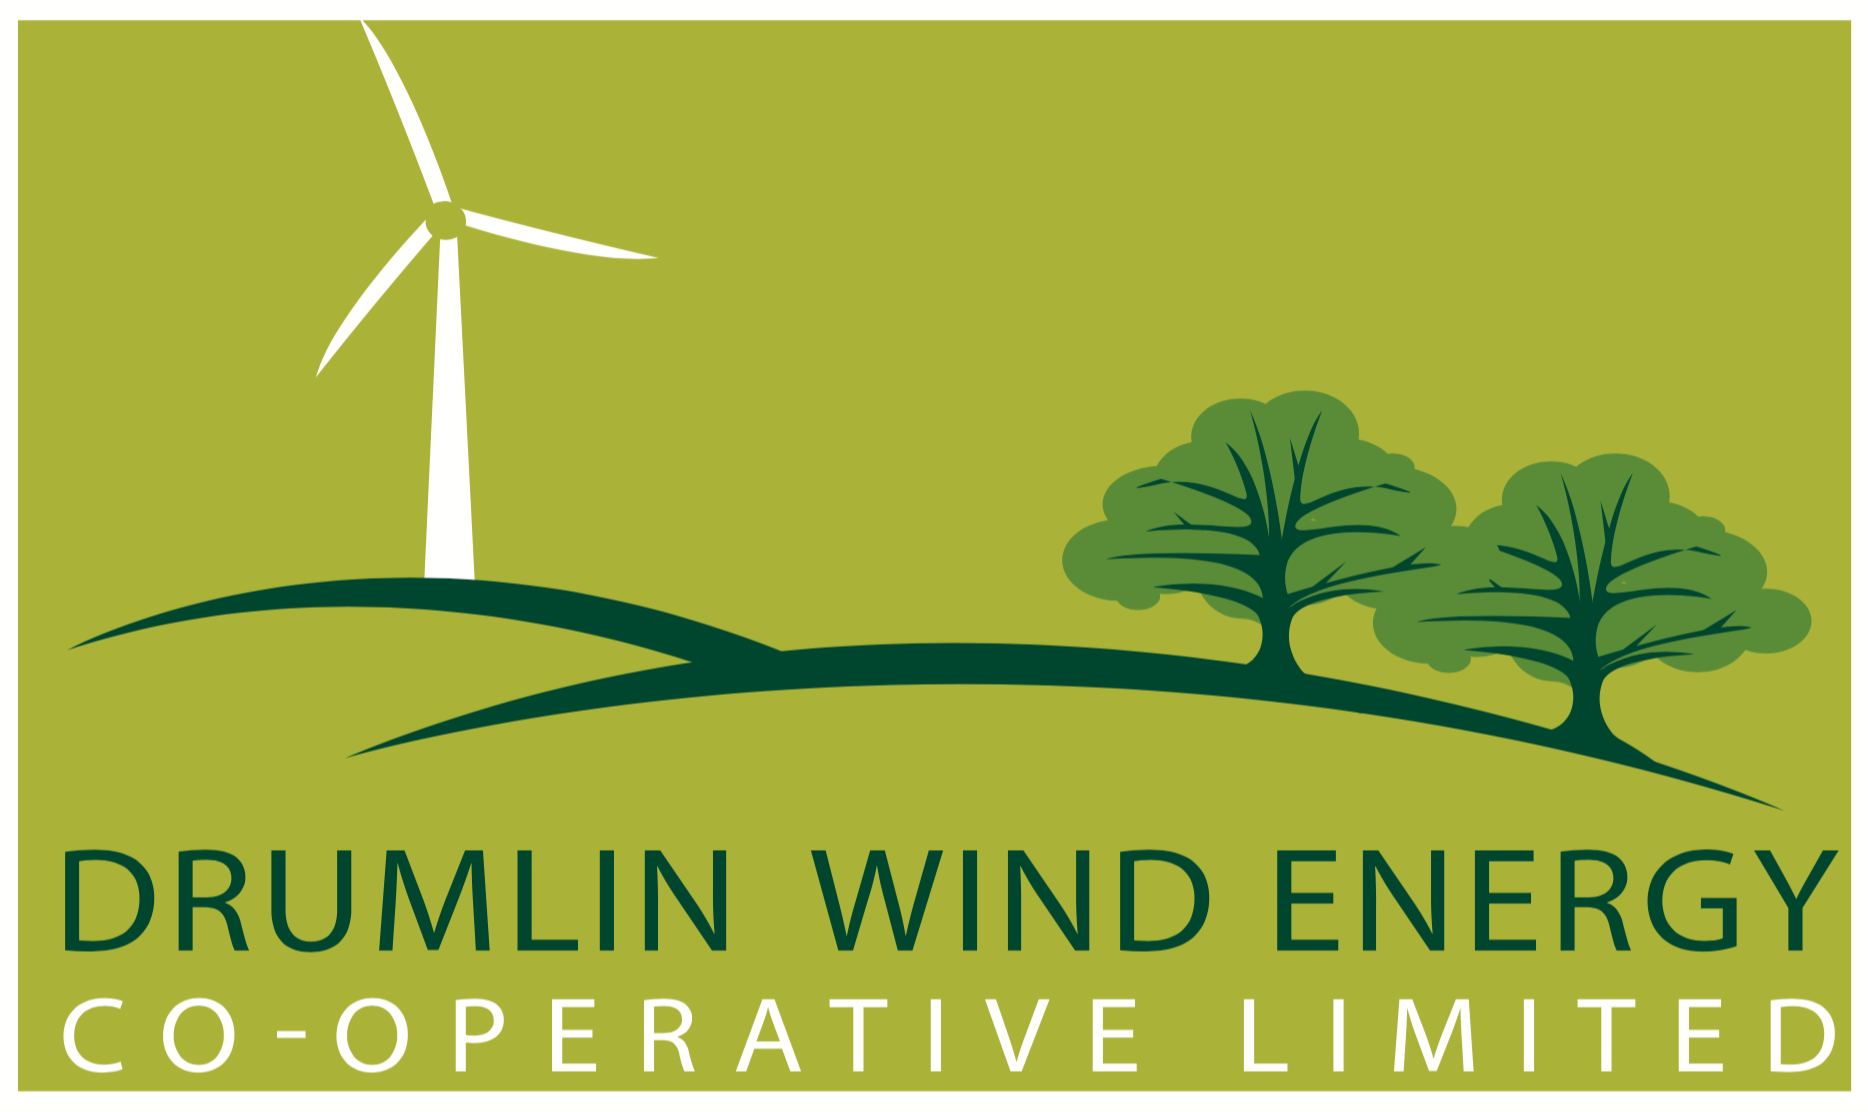 Drumlin Wind Energy Co-op